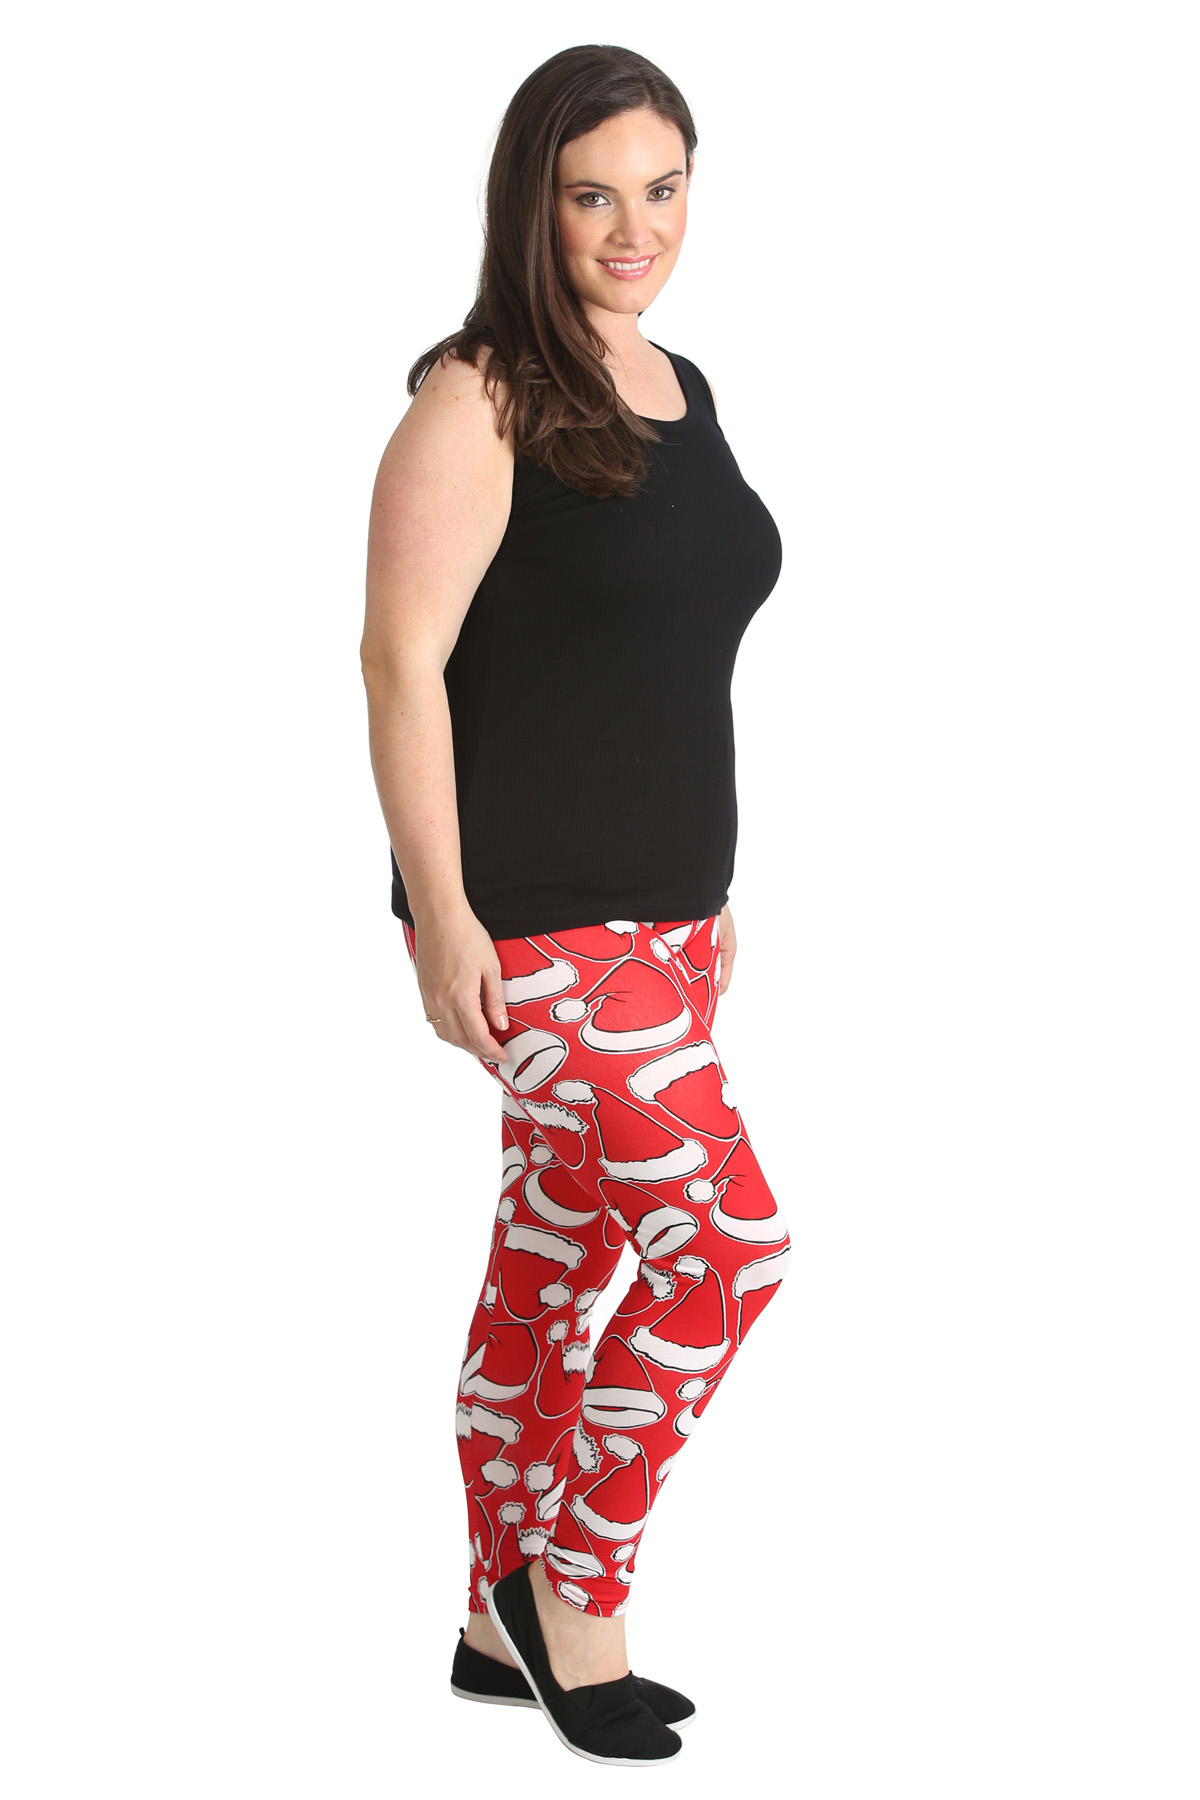 LuLaRoe is the only place where you can find leggings that are soft, comfortable, and in an awesome variety of fun colors and prints. In fact, it's in maintaining that comfort and style that has resulted in such a special line of leggings for women.